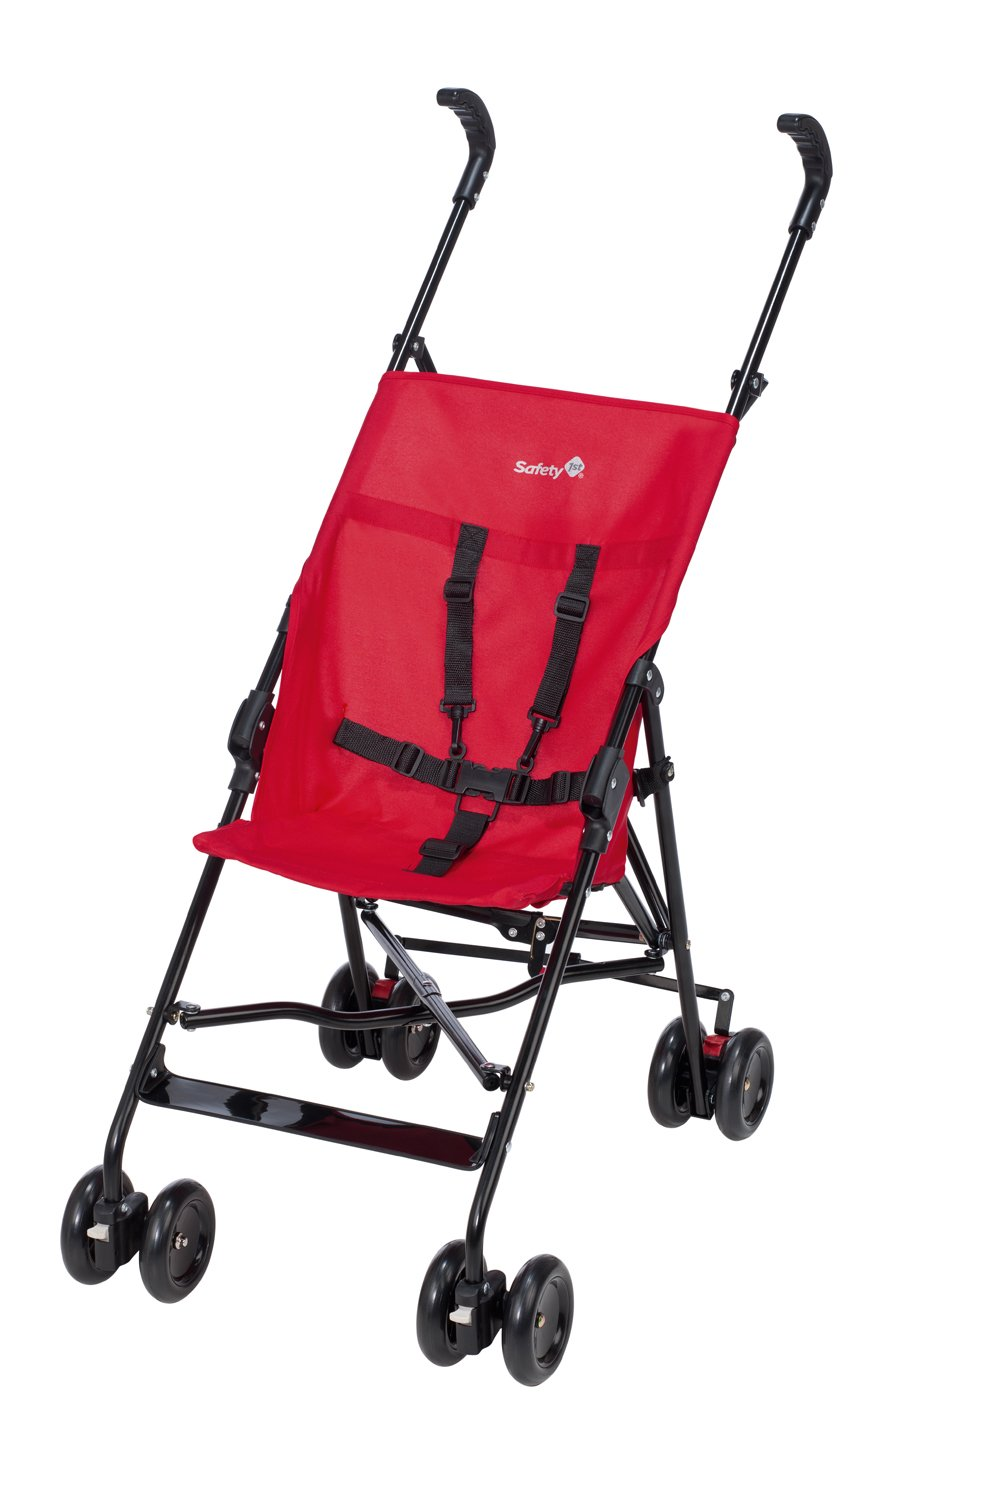 Safety 1st Peps Lightweight Buggy, Plain Red  Lightweight, only weighing 4.5kg so it's easy to carry Suspension on front wheels for a smooth ride Highly manoeuvrable with the swivelling front wheels 2